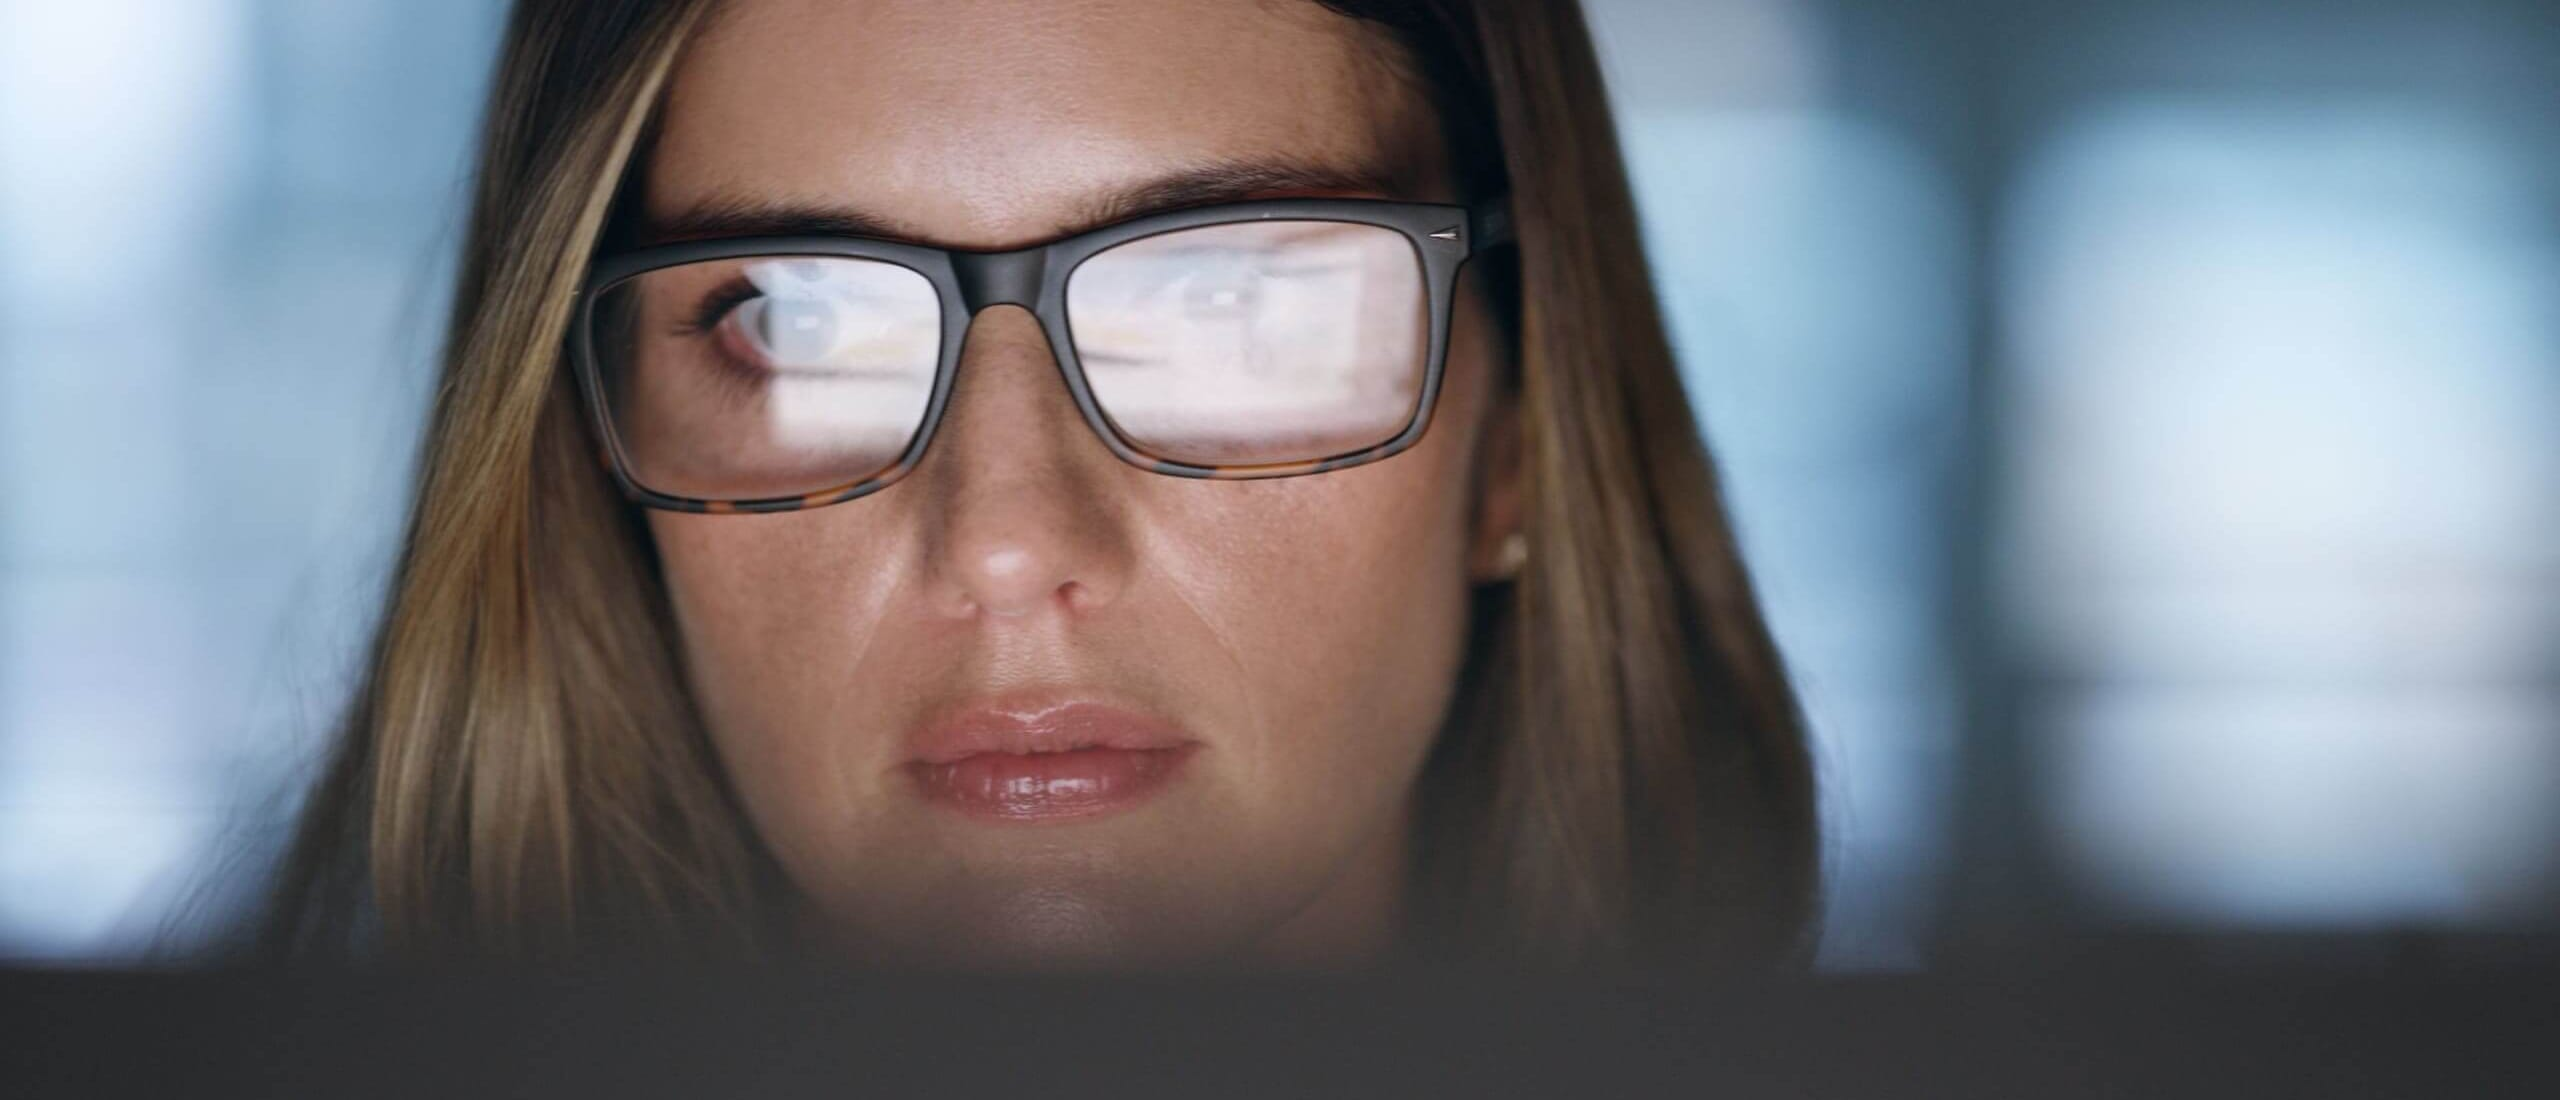 Woman with glasses reflecting computer screen